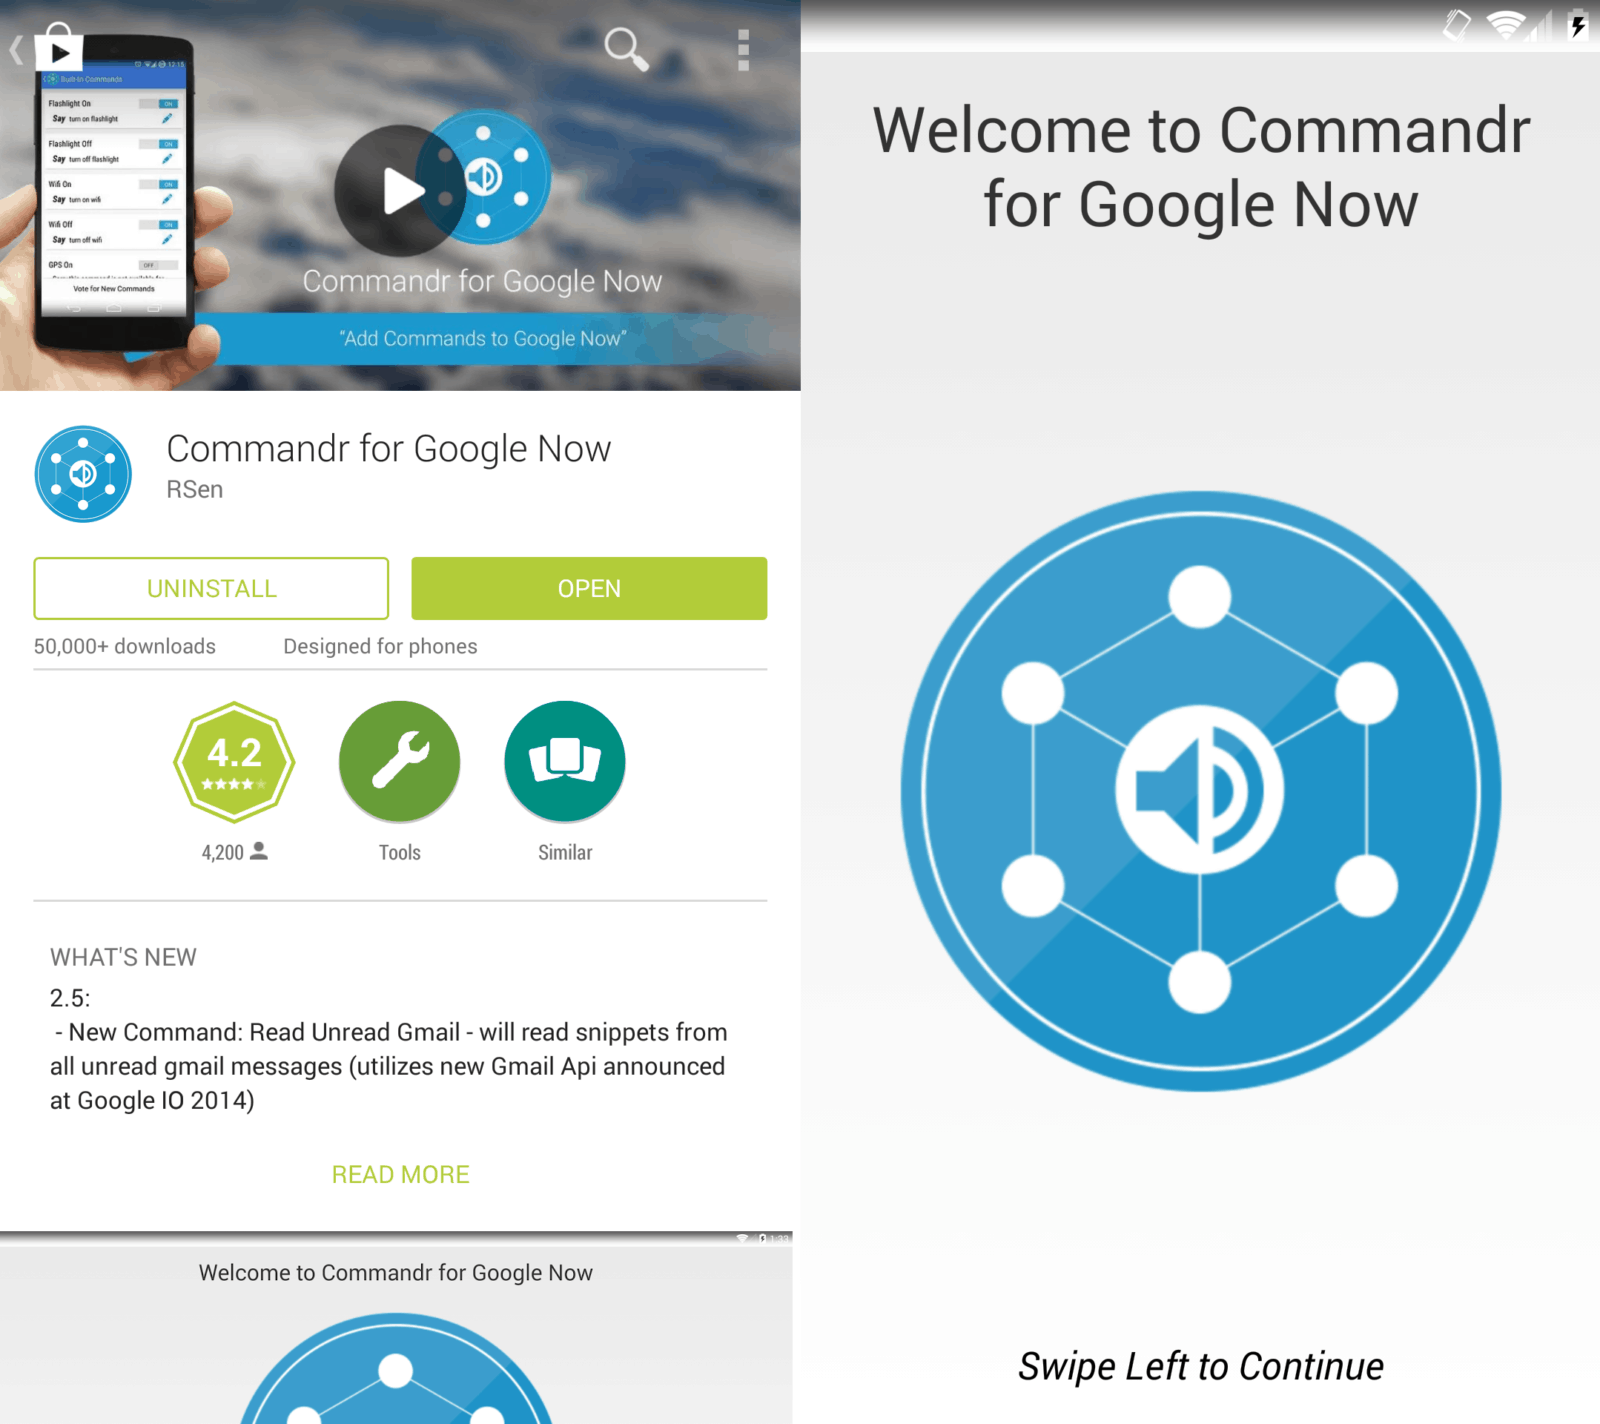 Commandr for Google Now